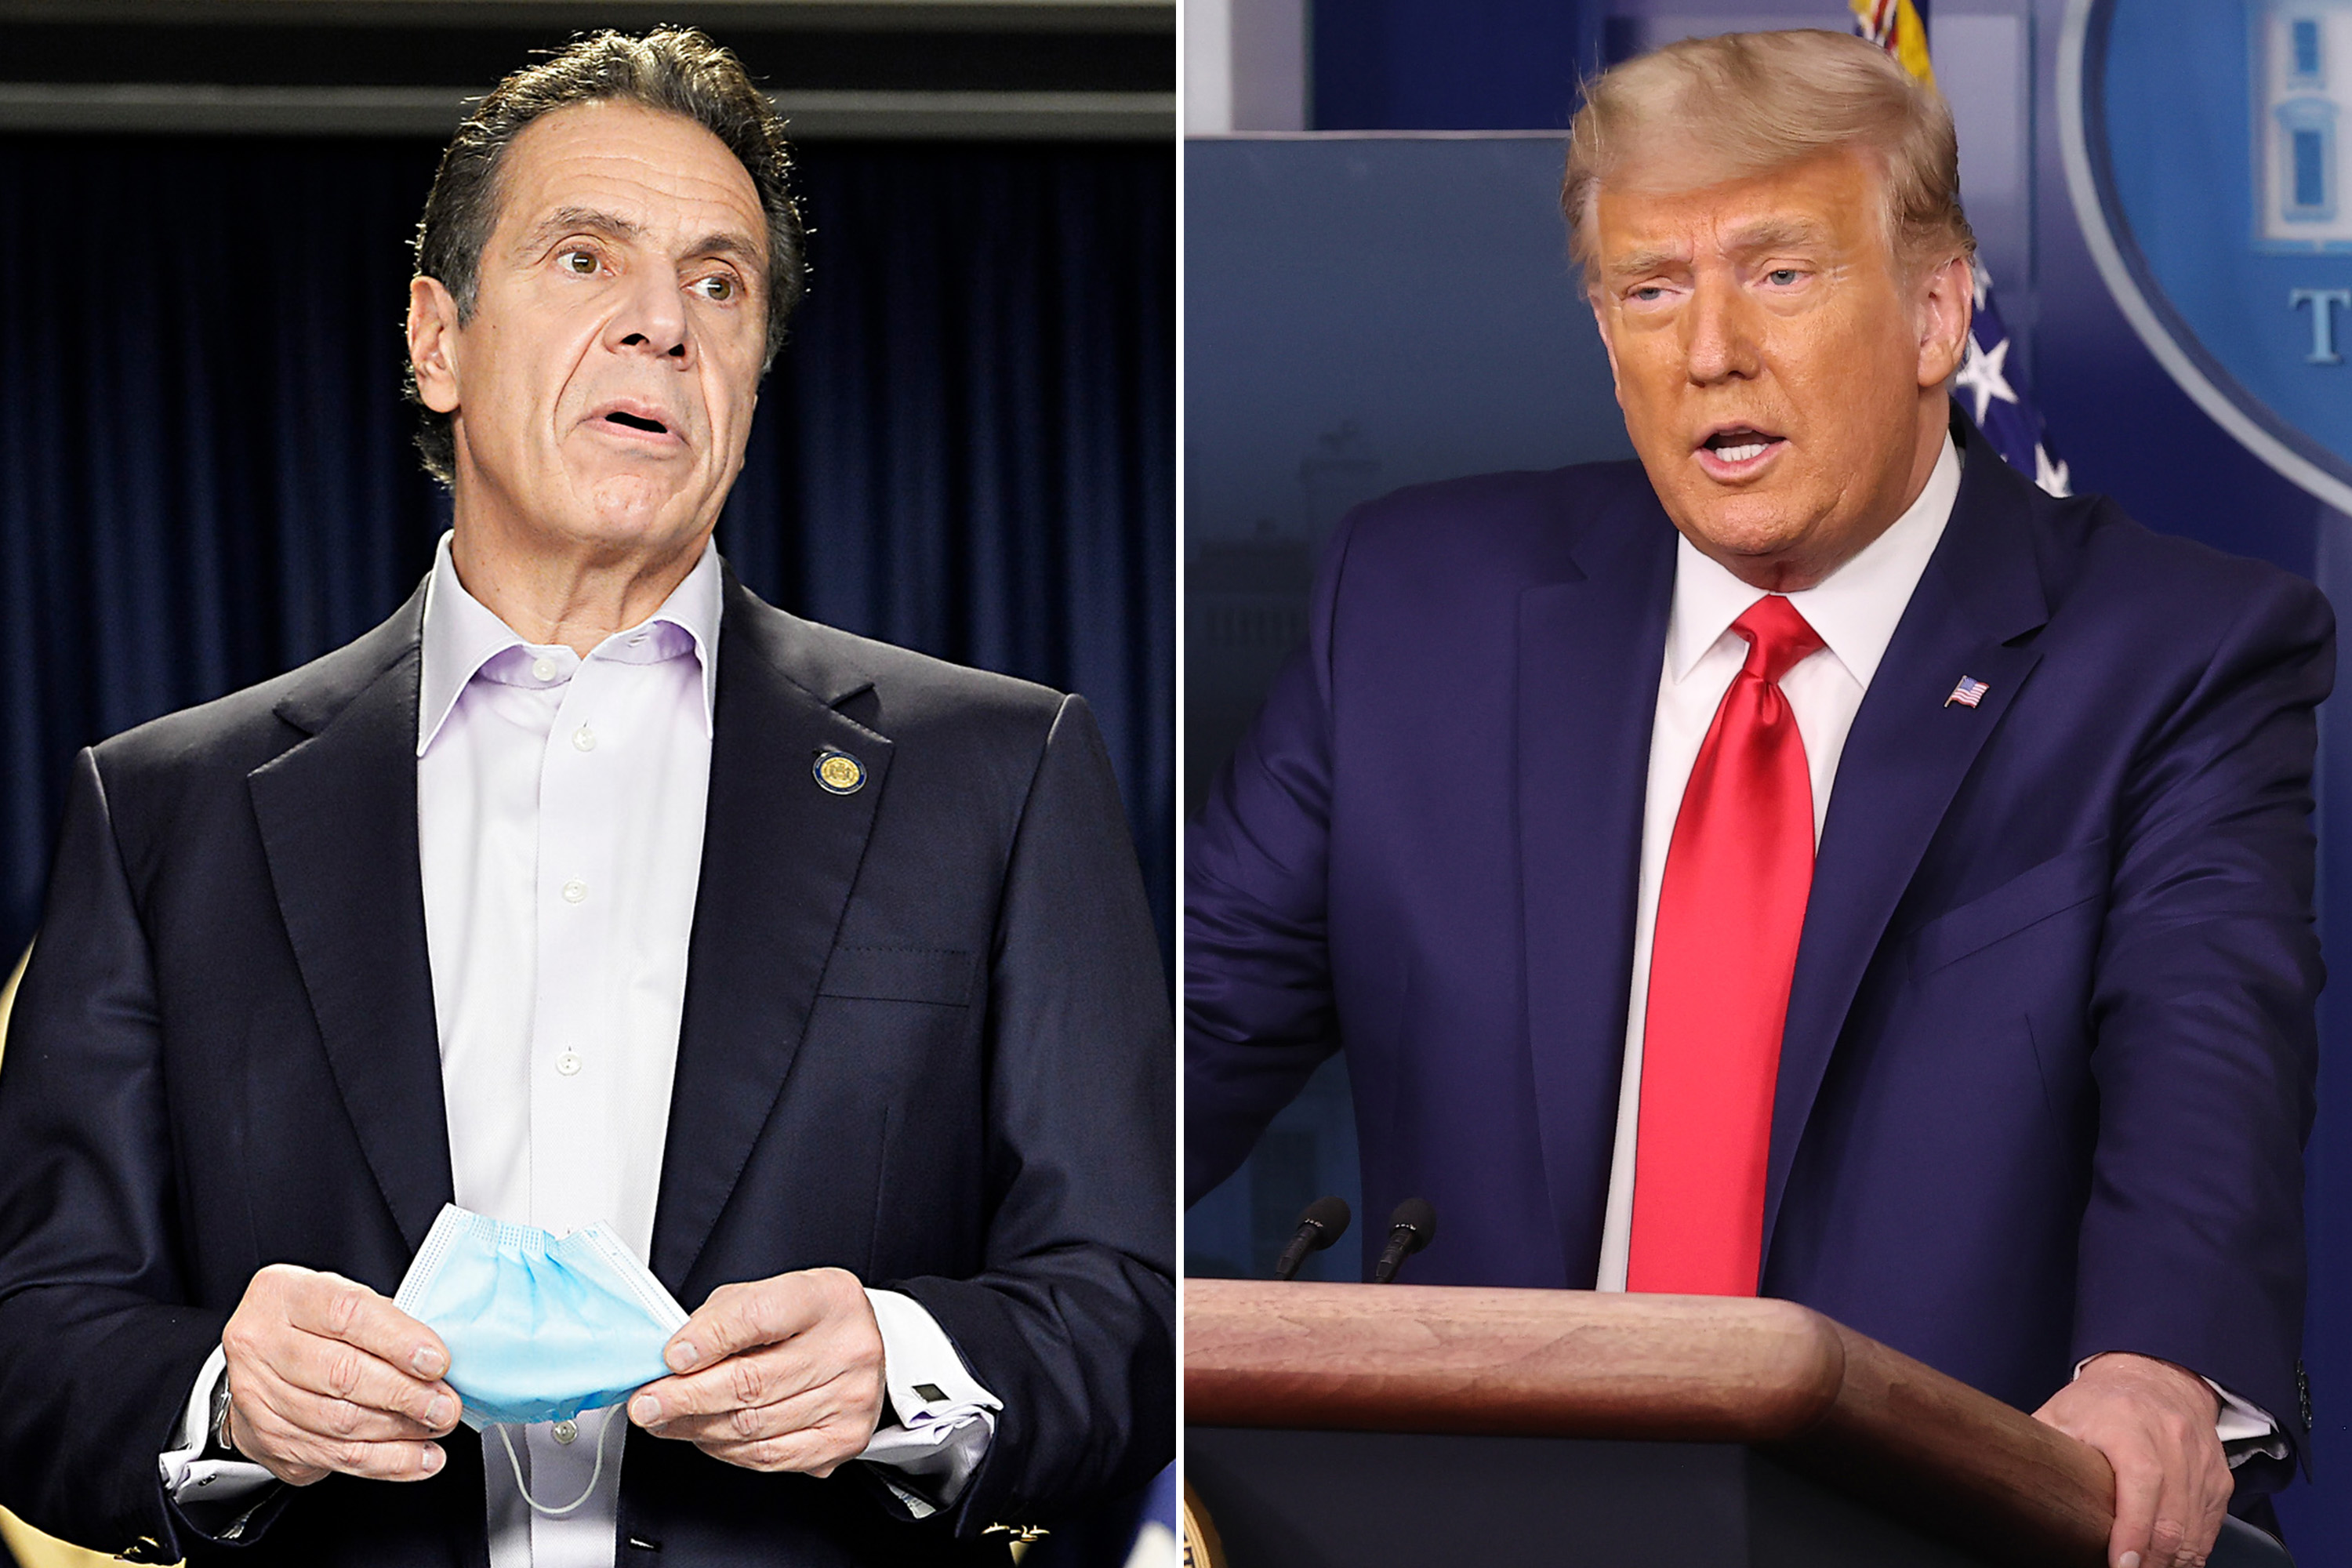 Gov. Cuomo sides with Trump over 'disrespectful' reporters